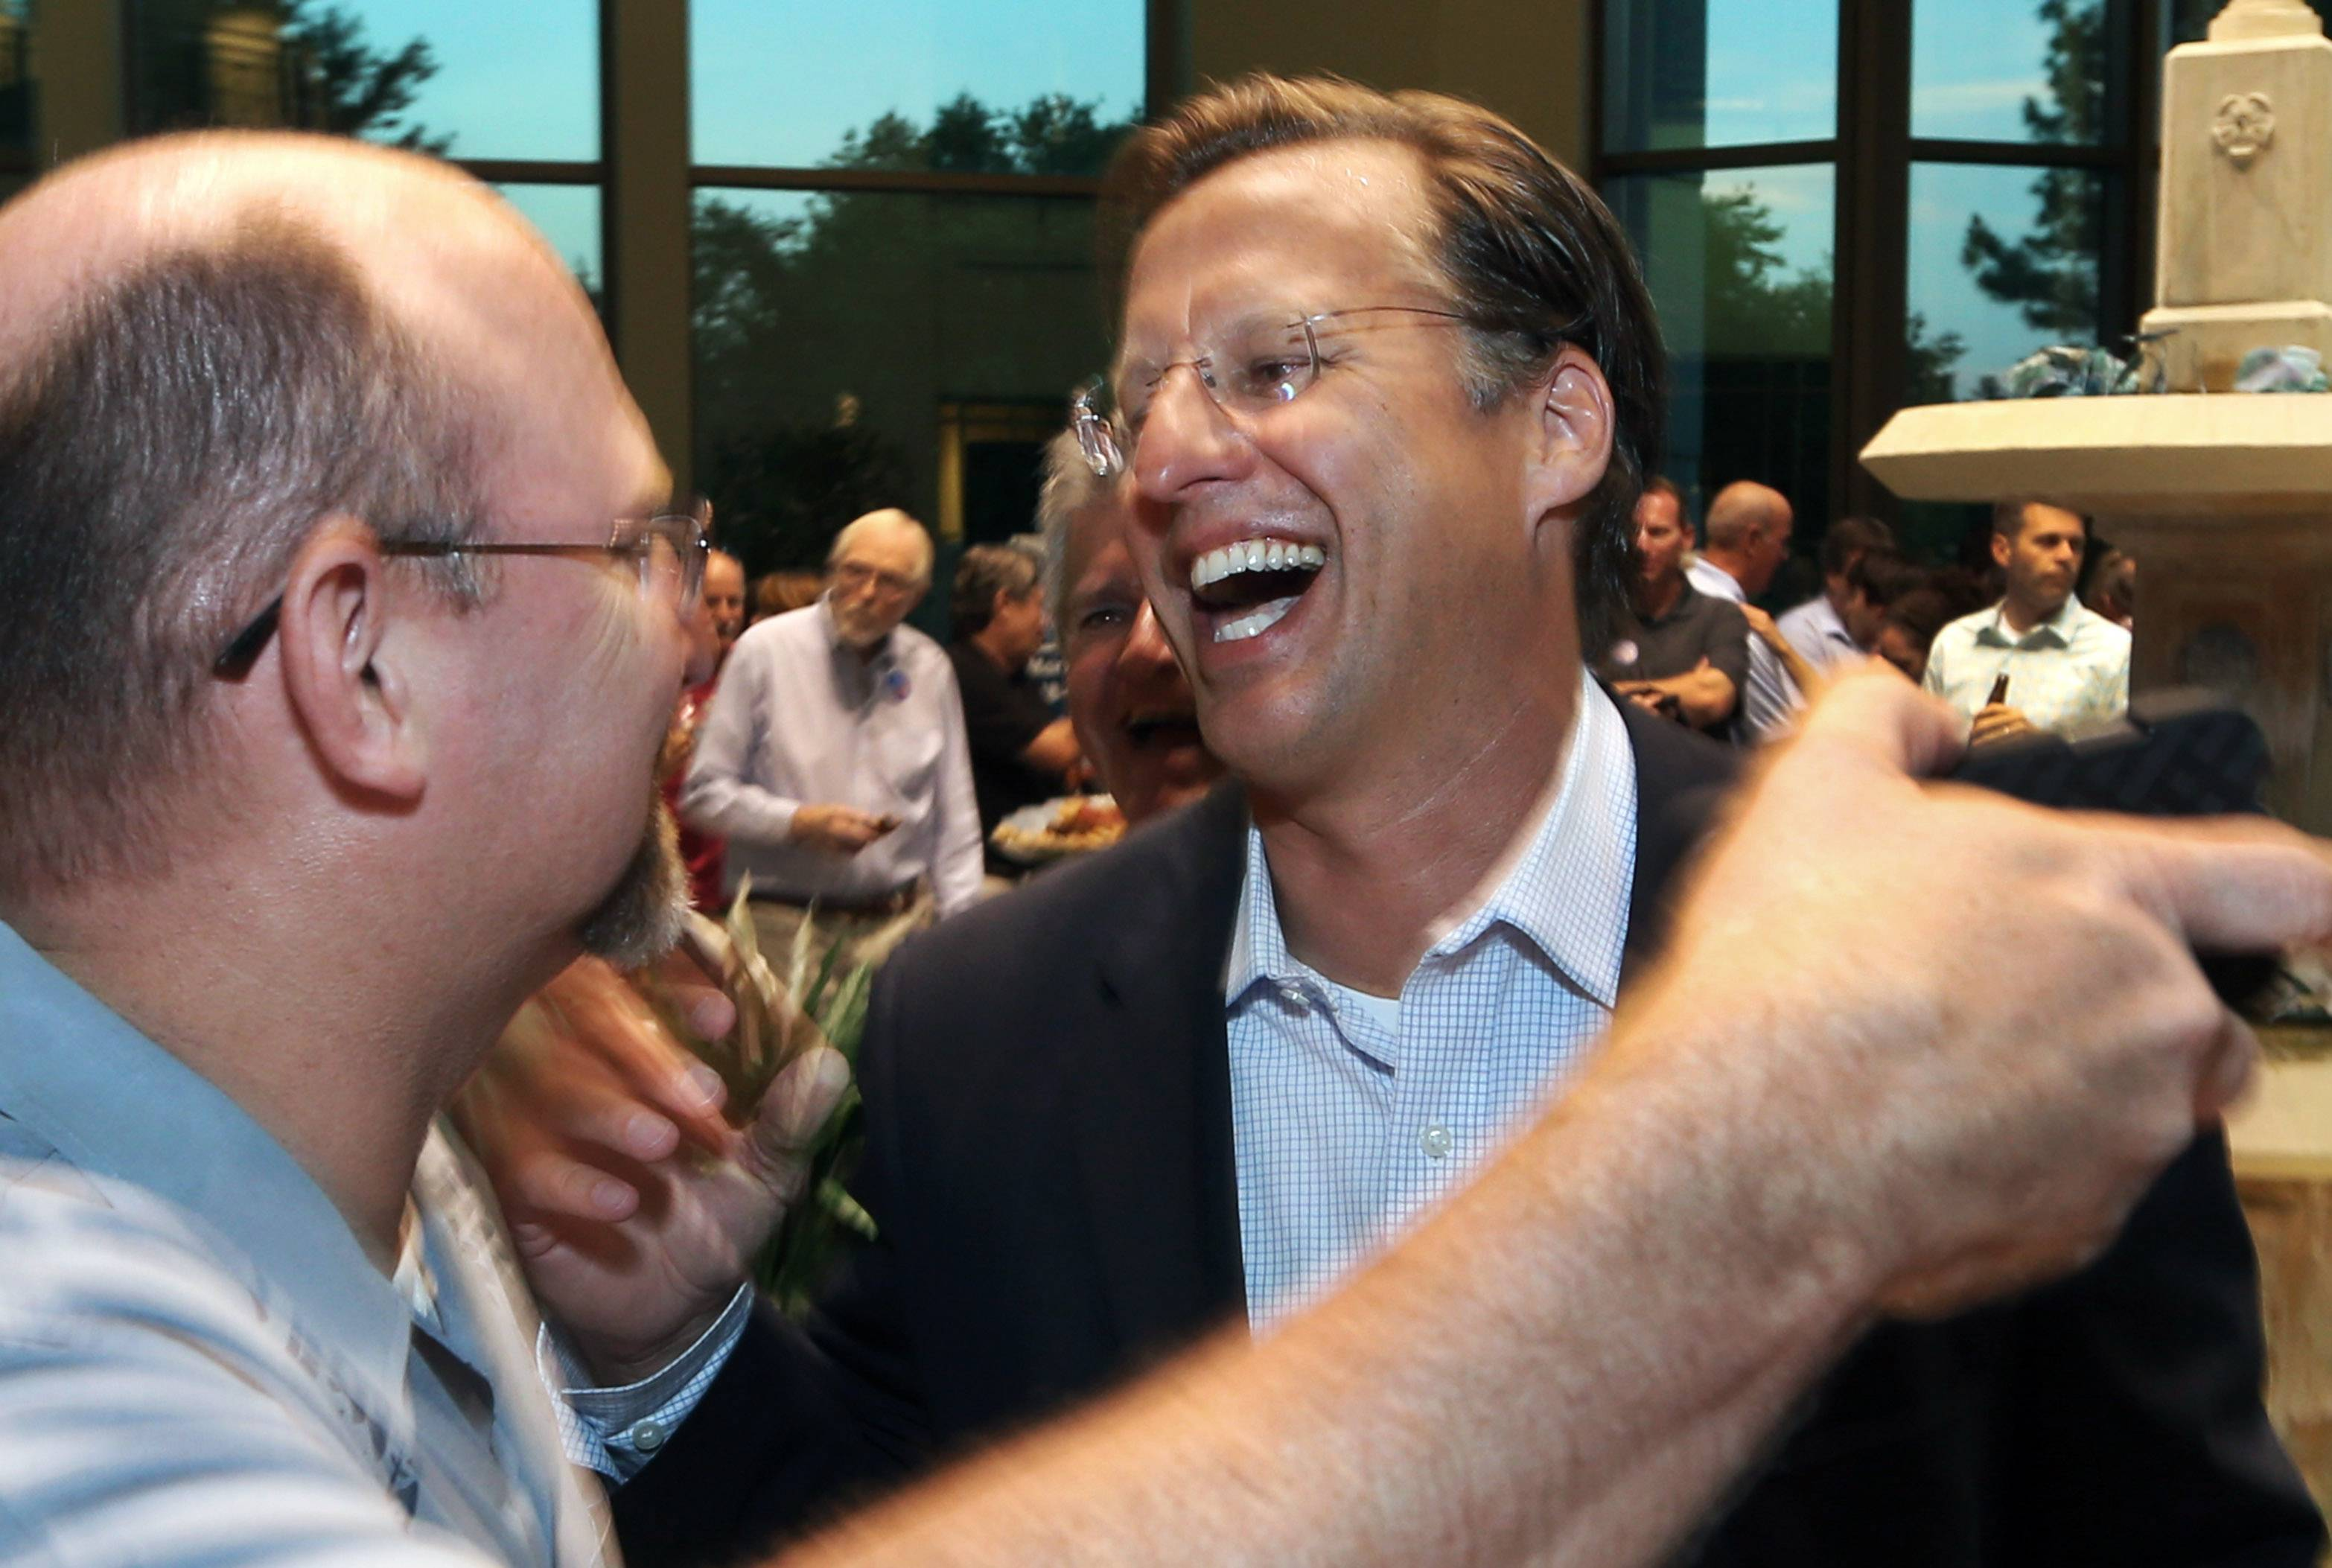 Dave Brat, right, is congratulated by Johnny Wetlaufer after Brat defeated House Majority Leader Eric Cantor in the Republican primary, Tuesday, June 10, 2014, in Richmond, Va. (AP Photo/Richmond Times-Dispatch, P. Kevin Morley)